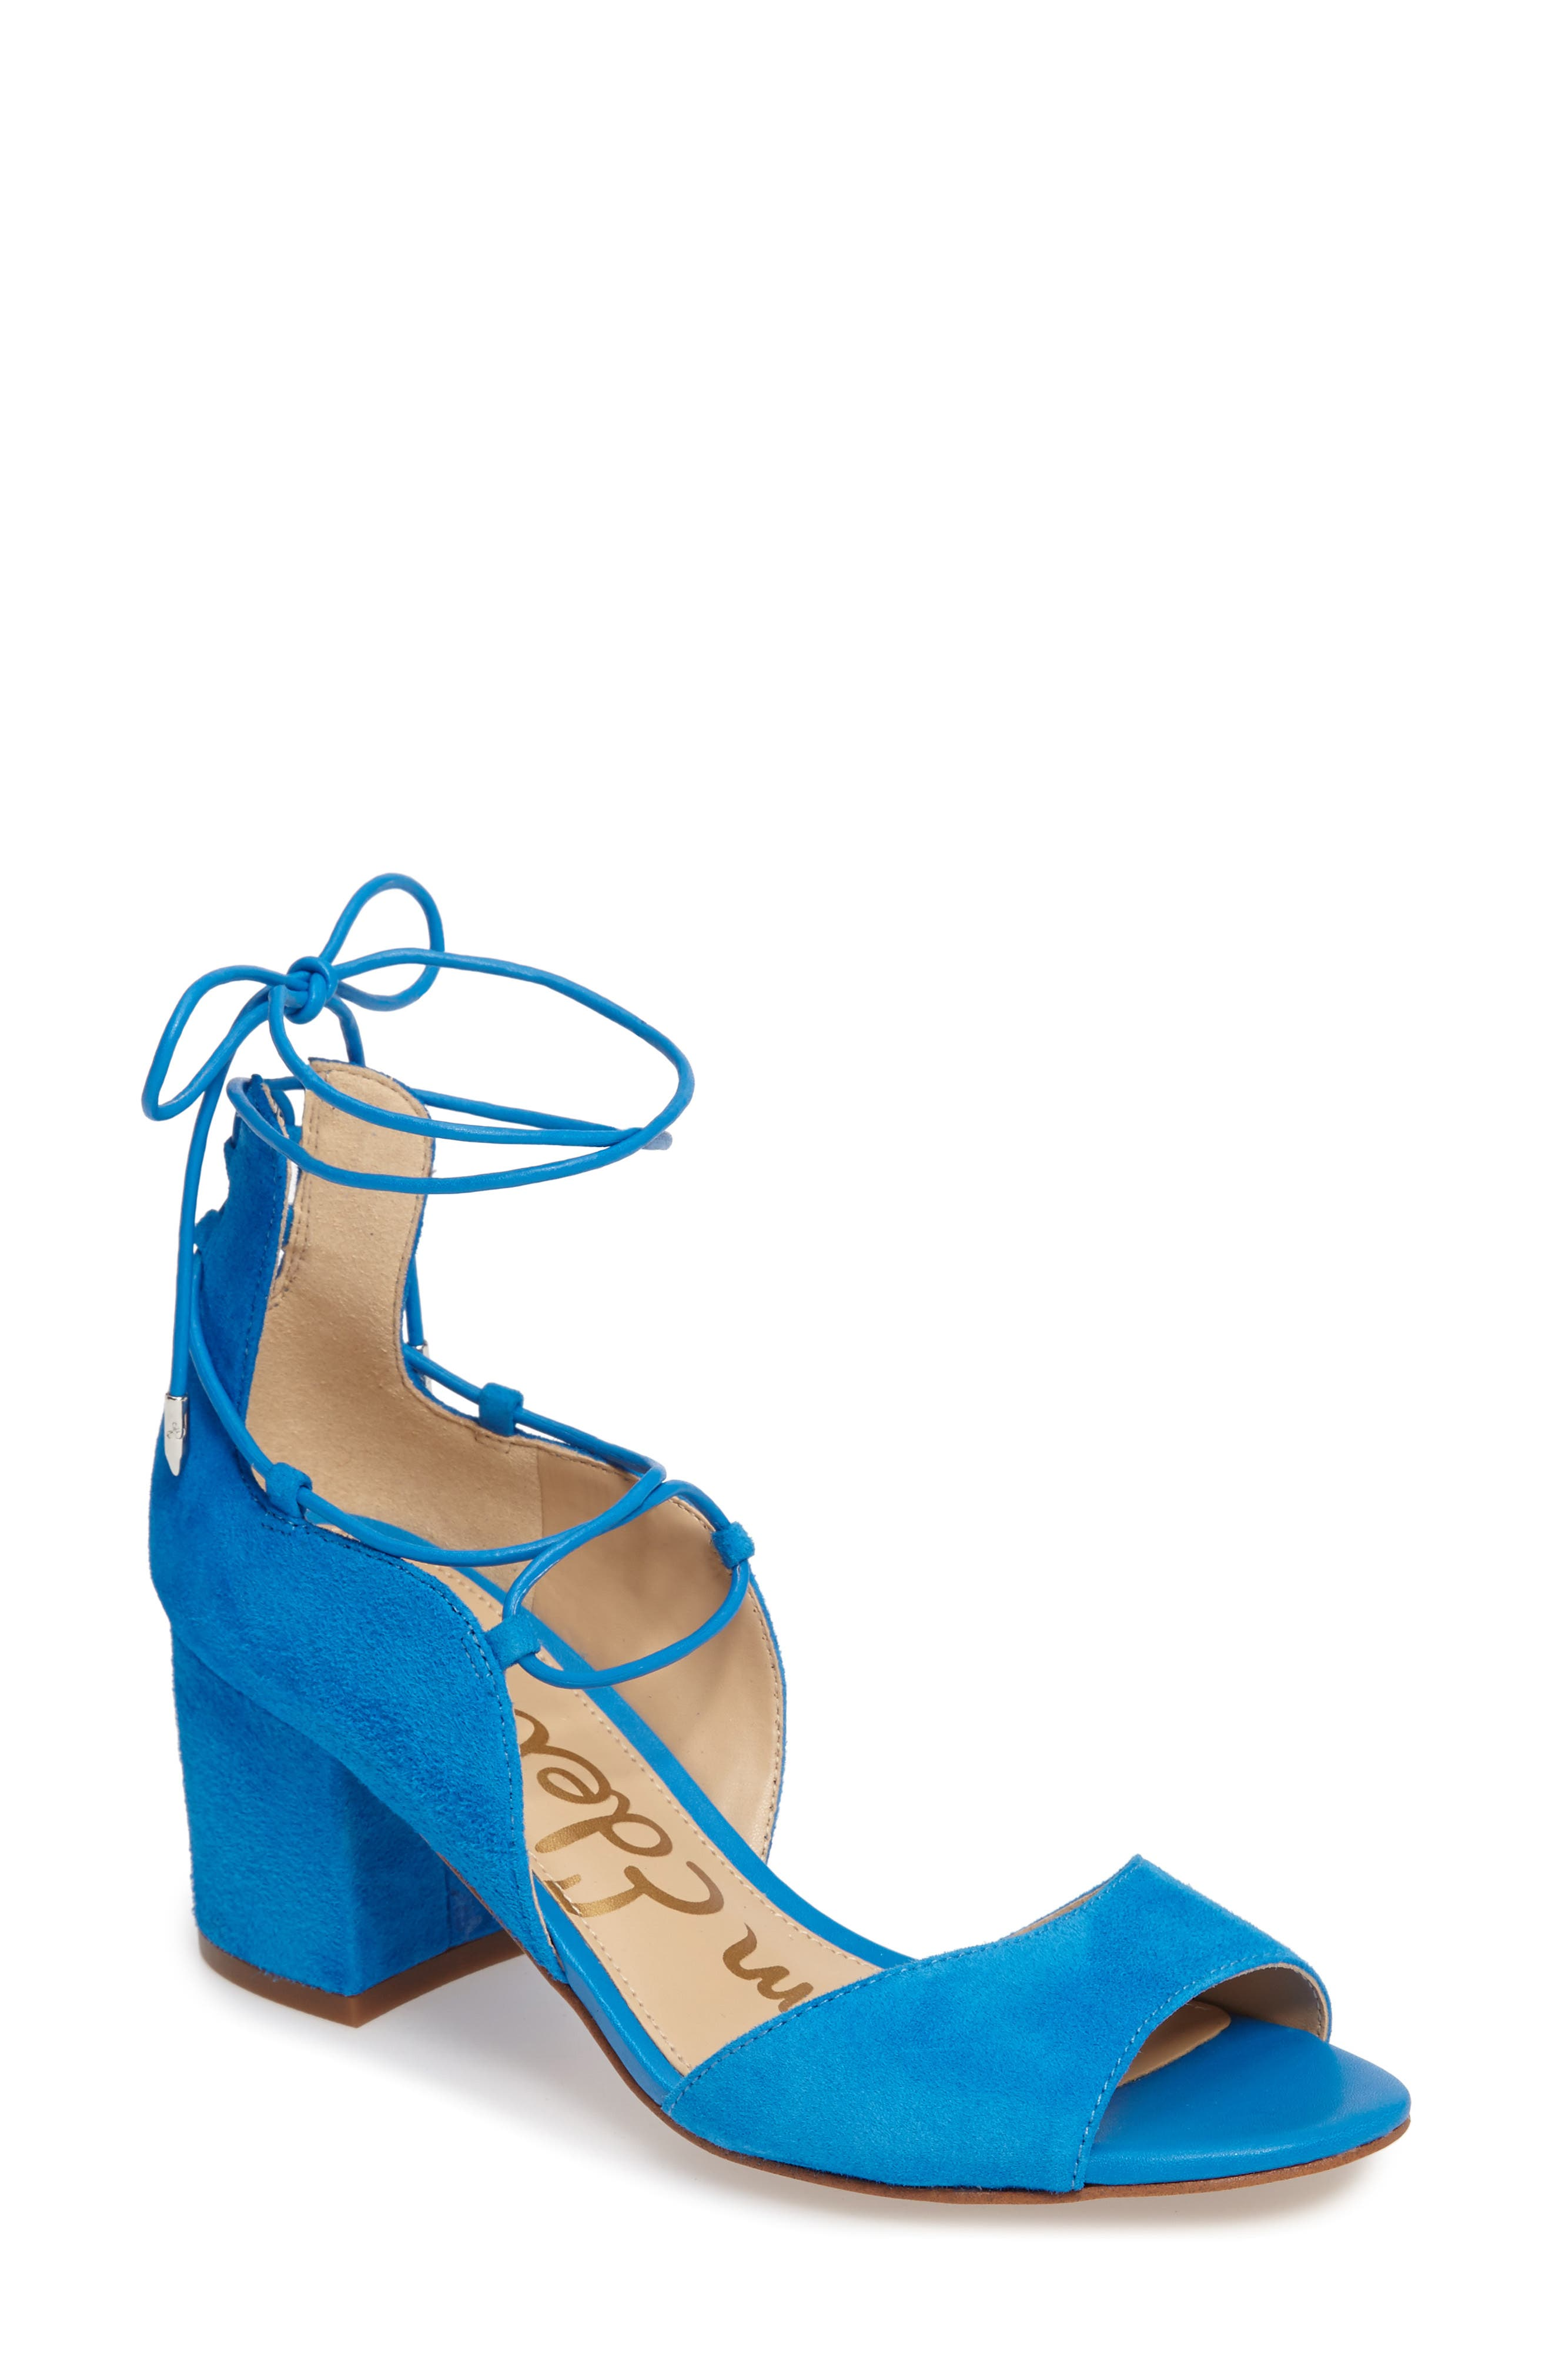 Alternate Image 1 Selected - Sam Edelman Serene Lace-Up Sandal (Women)